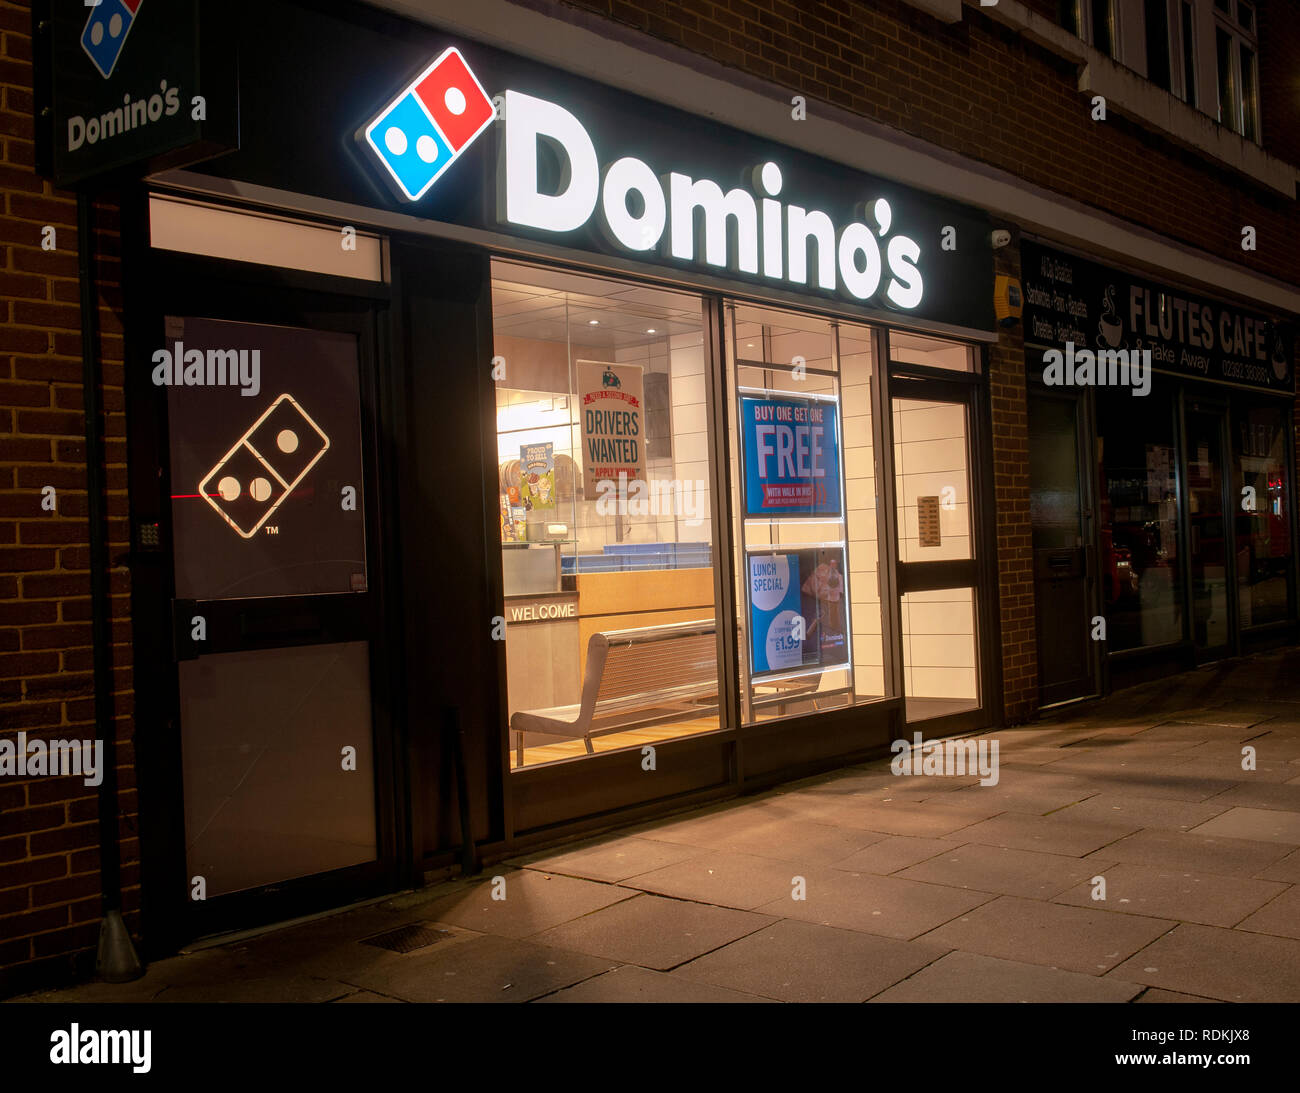 Domino's Pizza shop, High Street, Cosham, Portsmouth, Hampshire, England, UK. Stock Photo